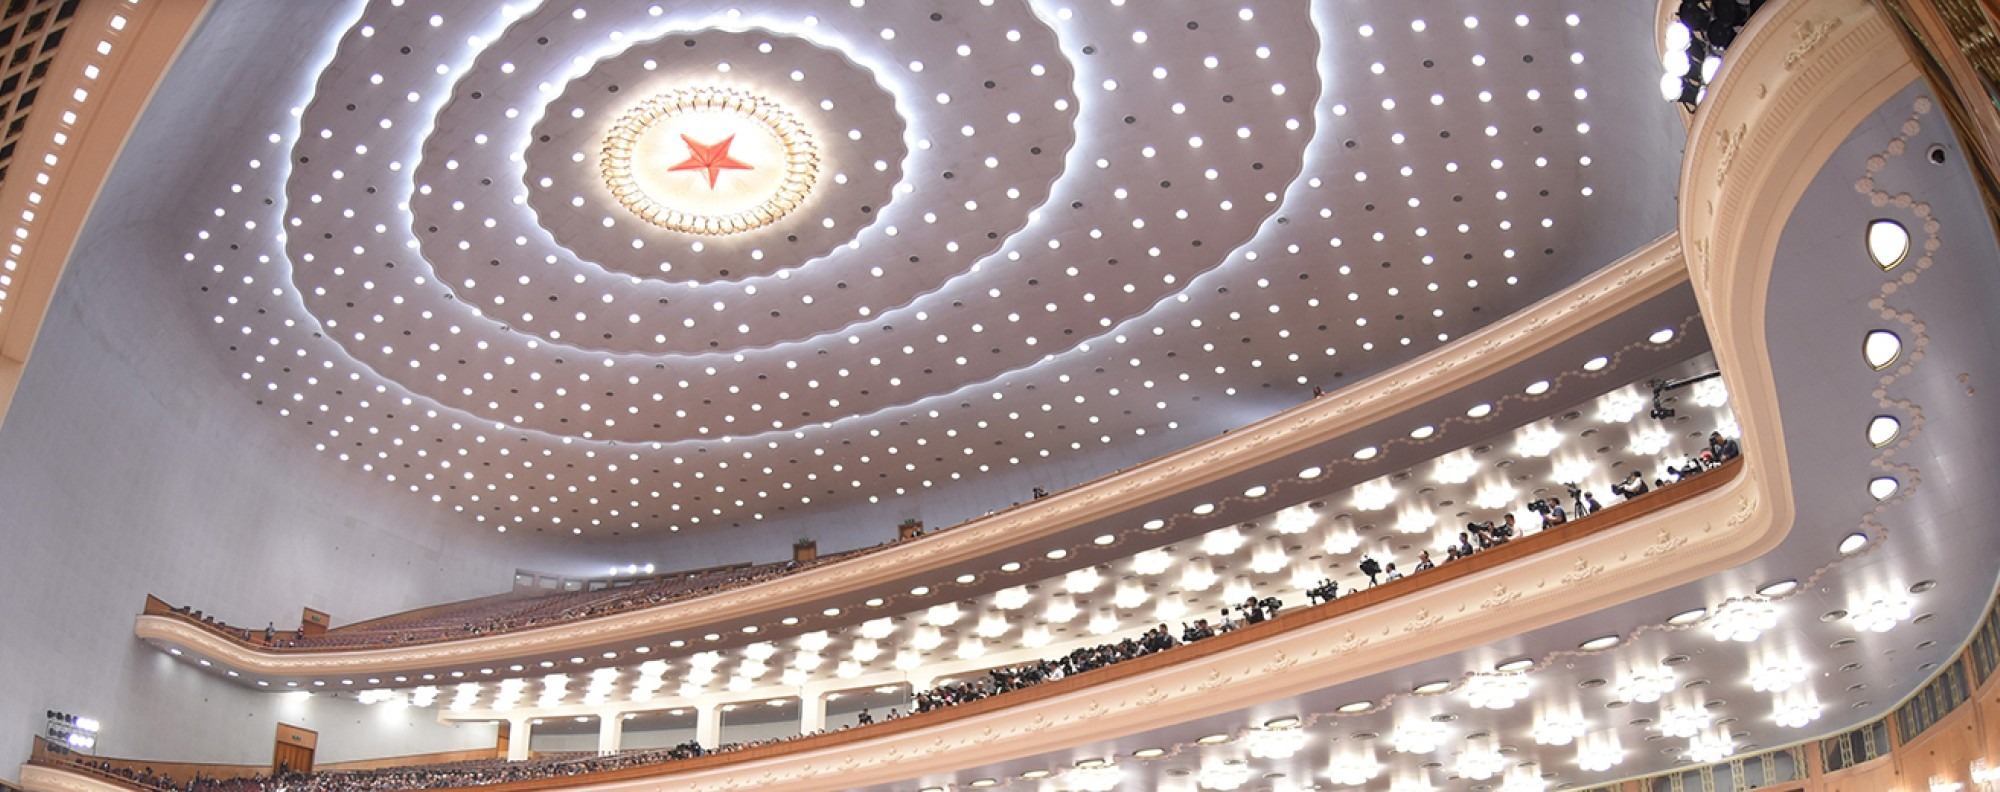 The Great Hall of the People in Beijing. Photo: Xinhua